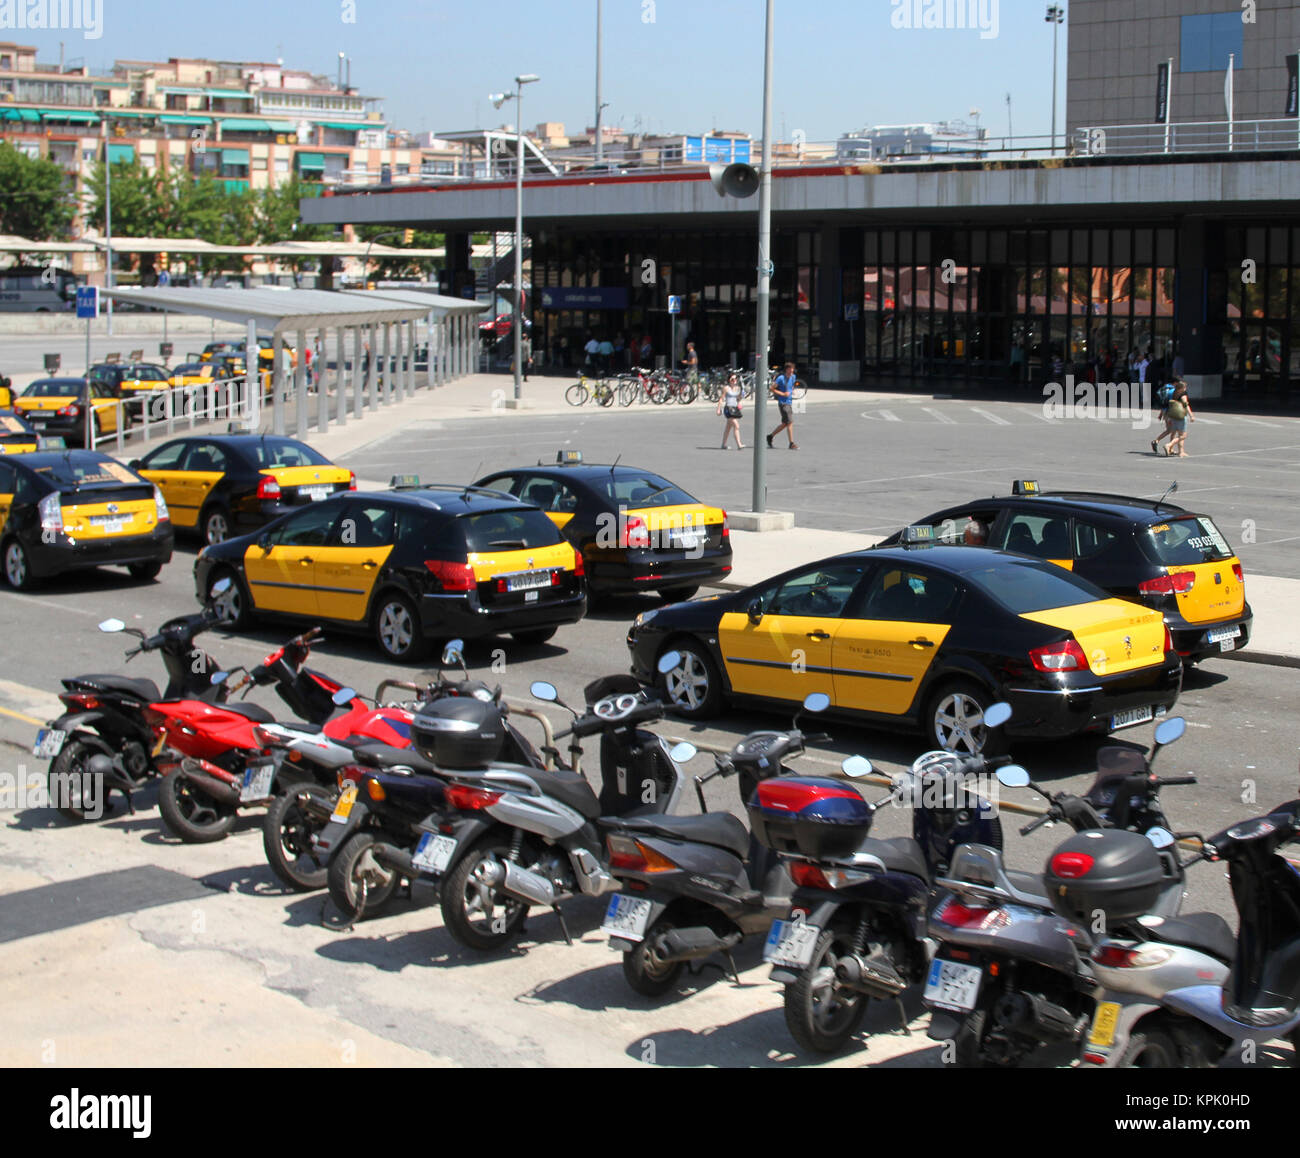 Skoda auto taxi cab in parking lot of Sants Railway Station with Scooters, Barcelona, Spain. - Stock Image